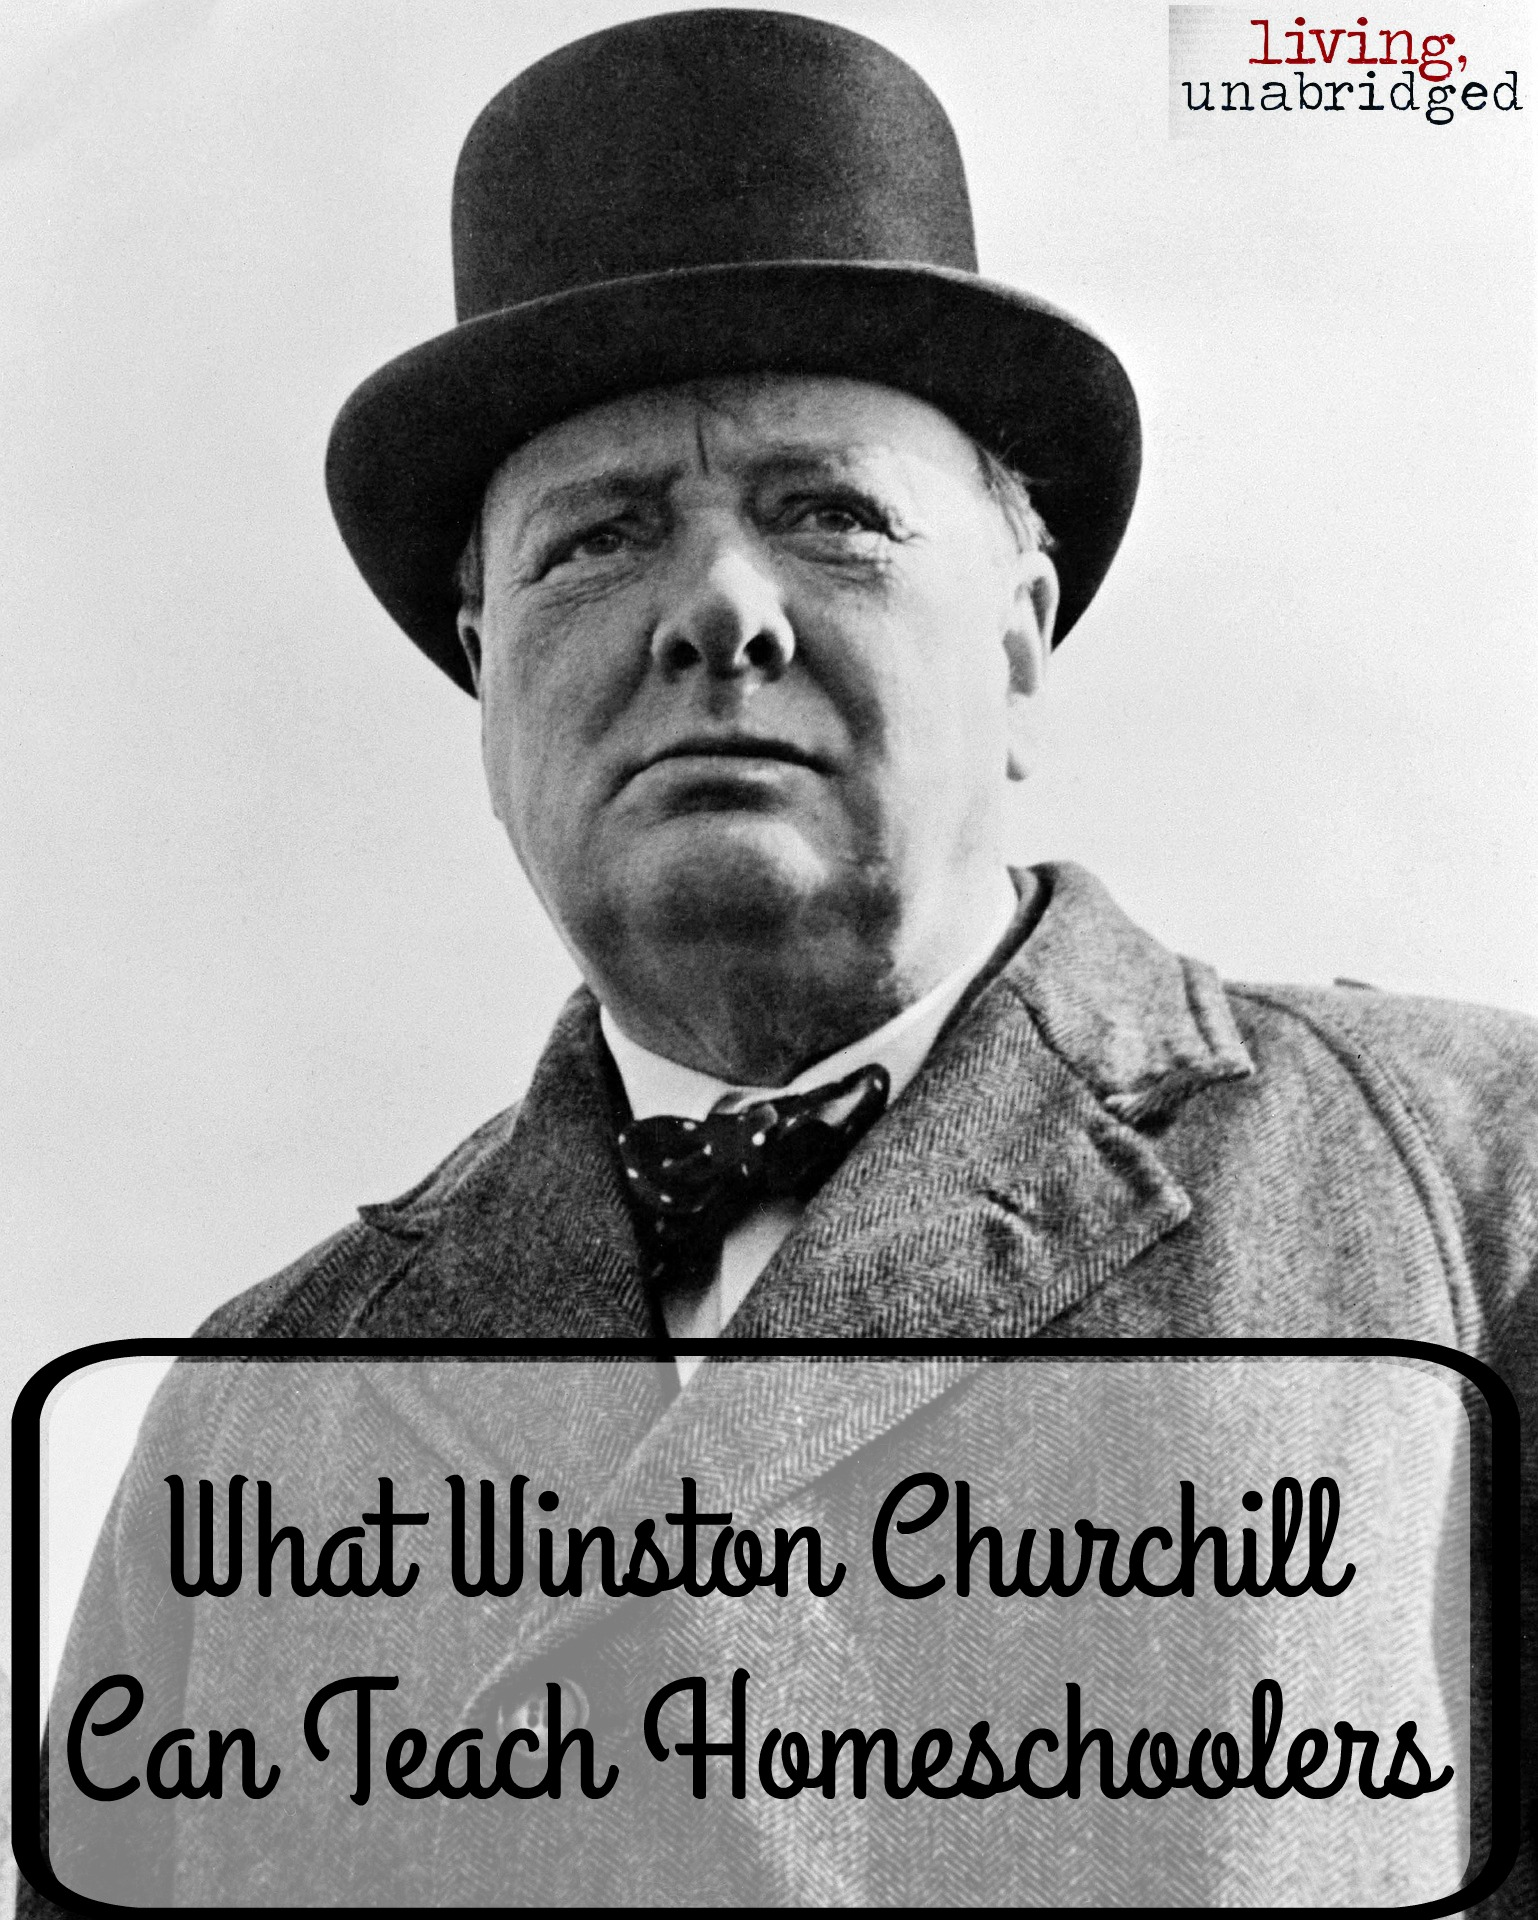 Winston Churchill Love Quotes What Winston Churchill Can Teach Homeschoolers  Living Unabridged